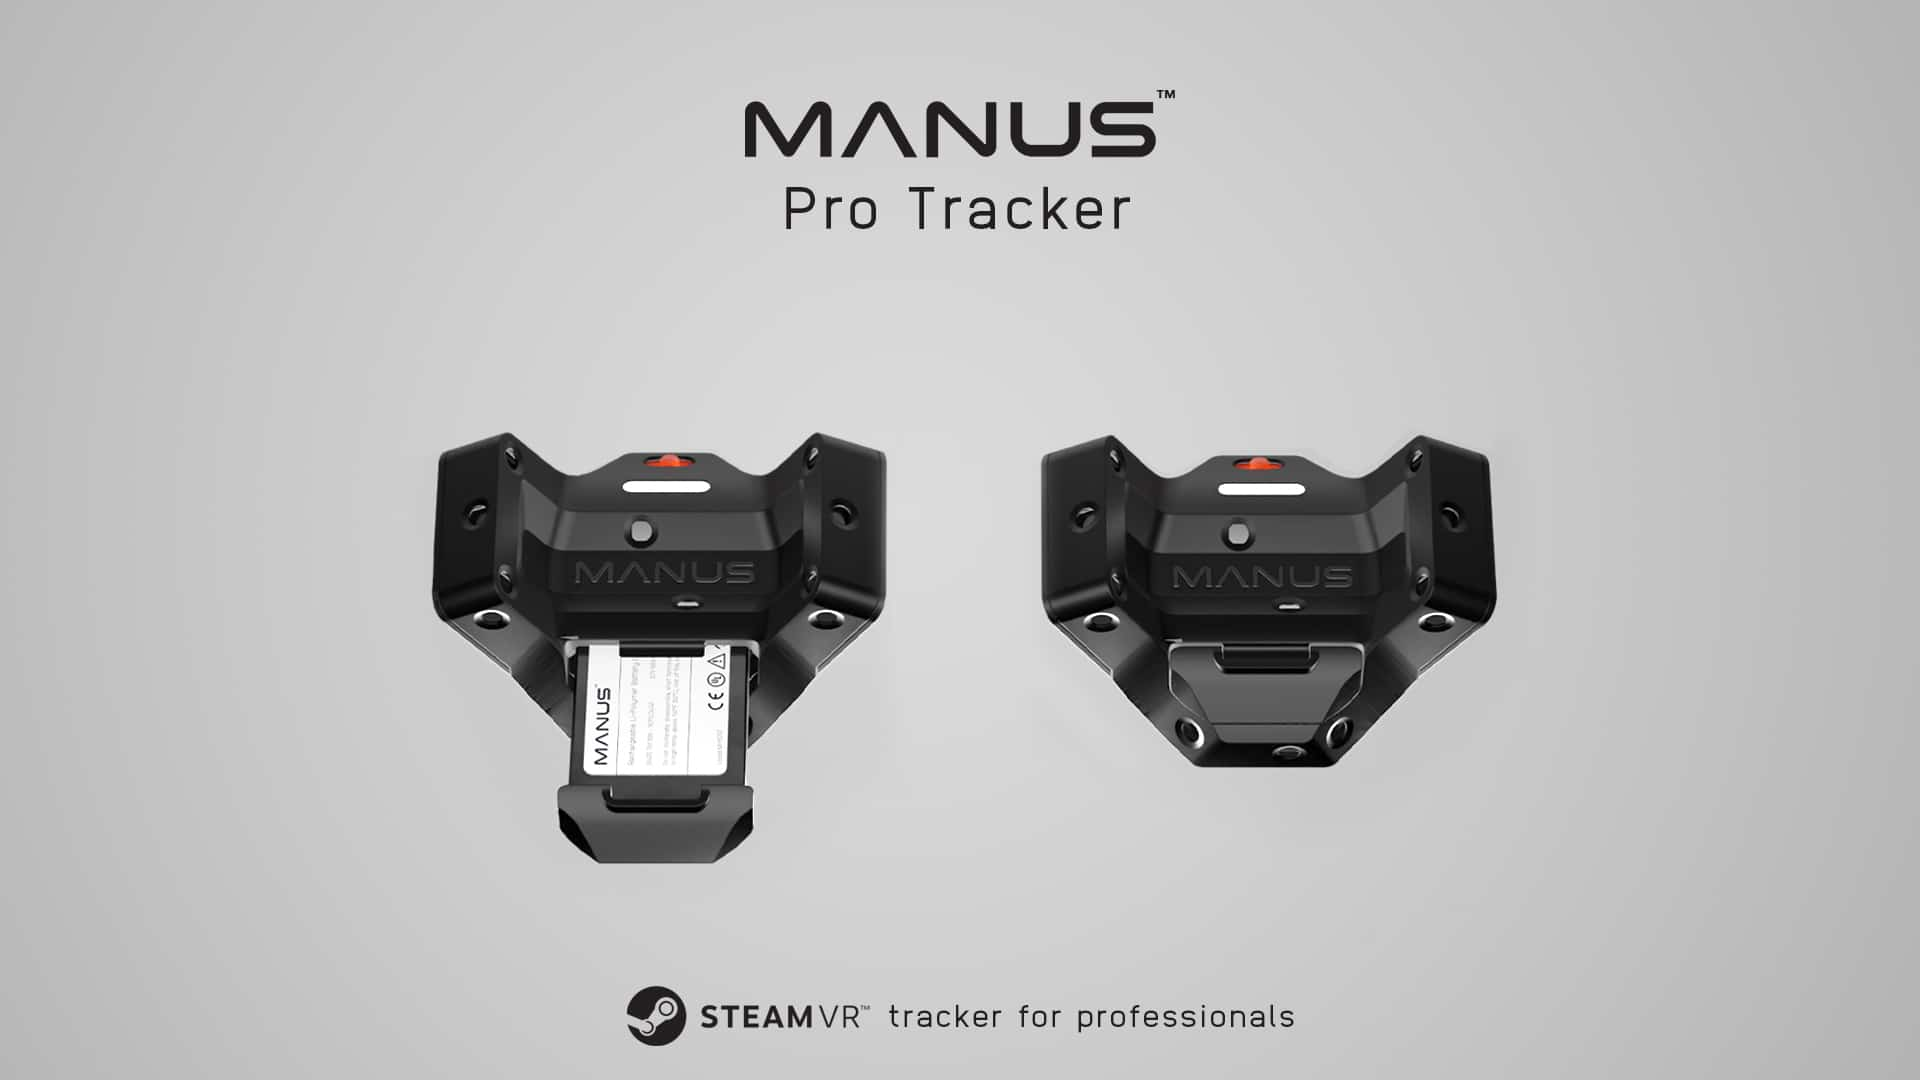 Manus Launches Professional SteamVR Tracker